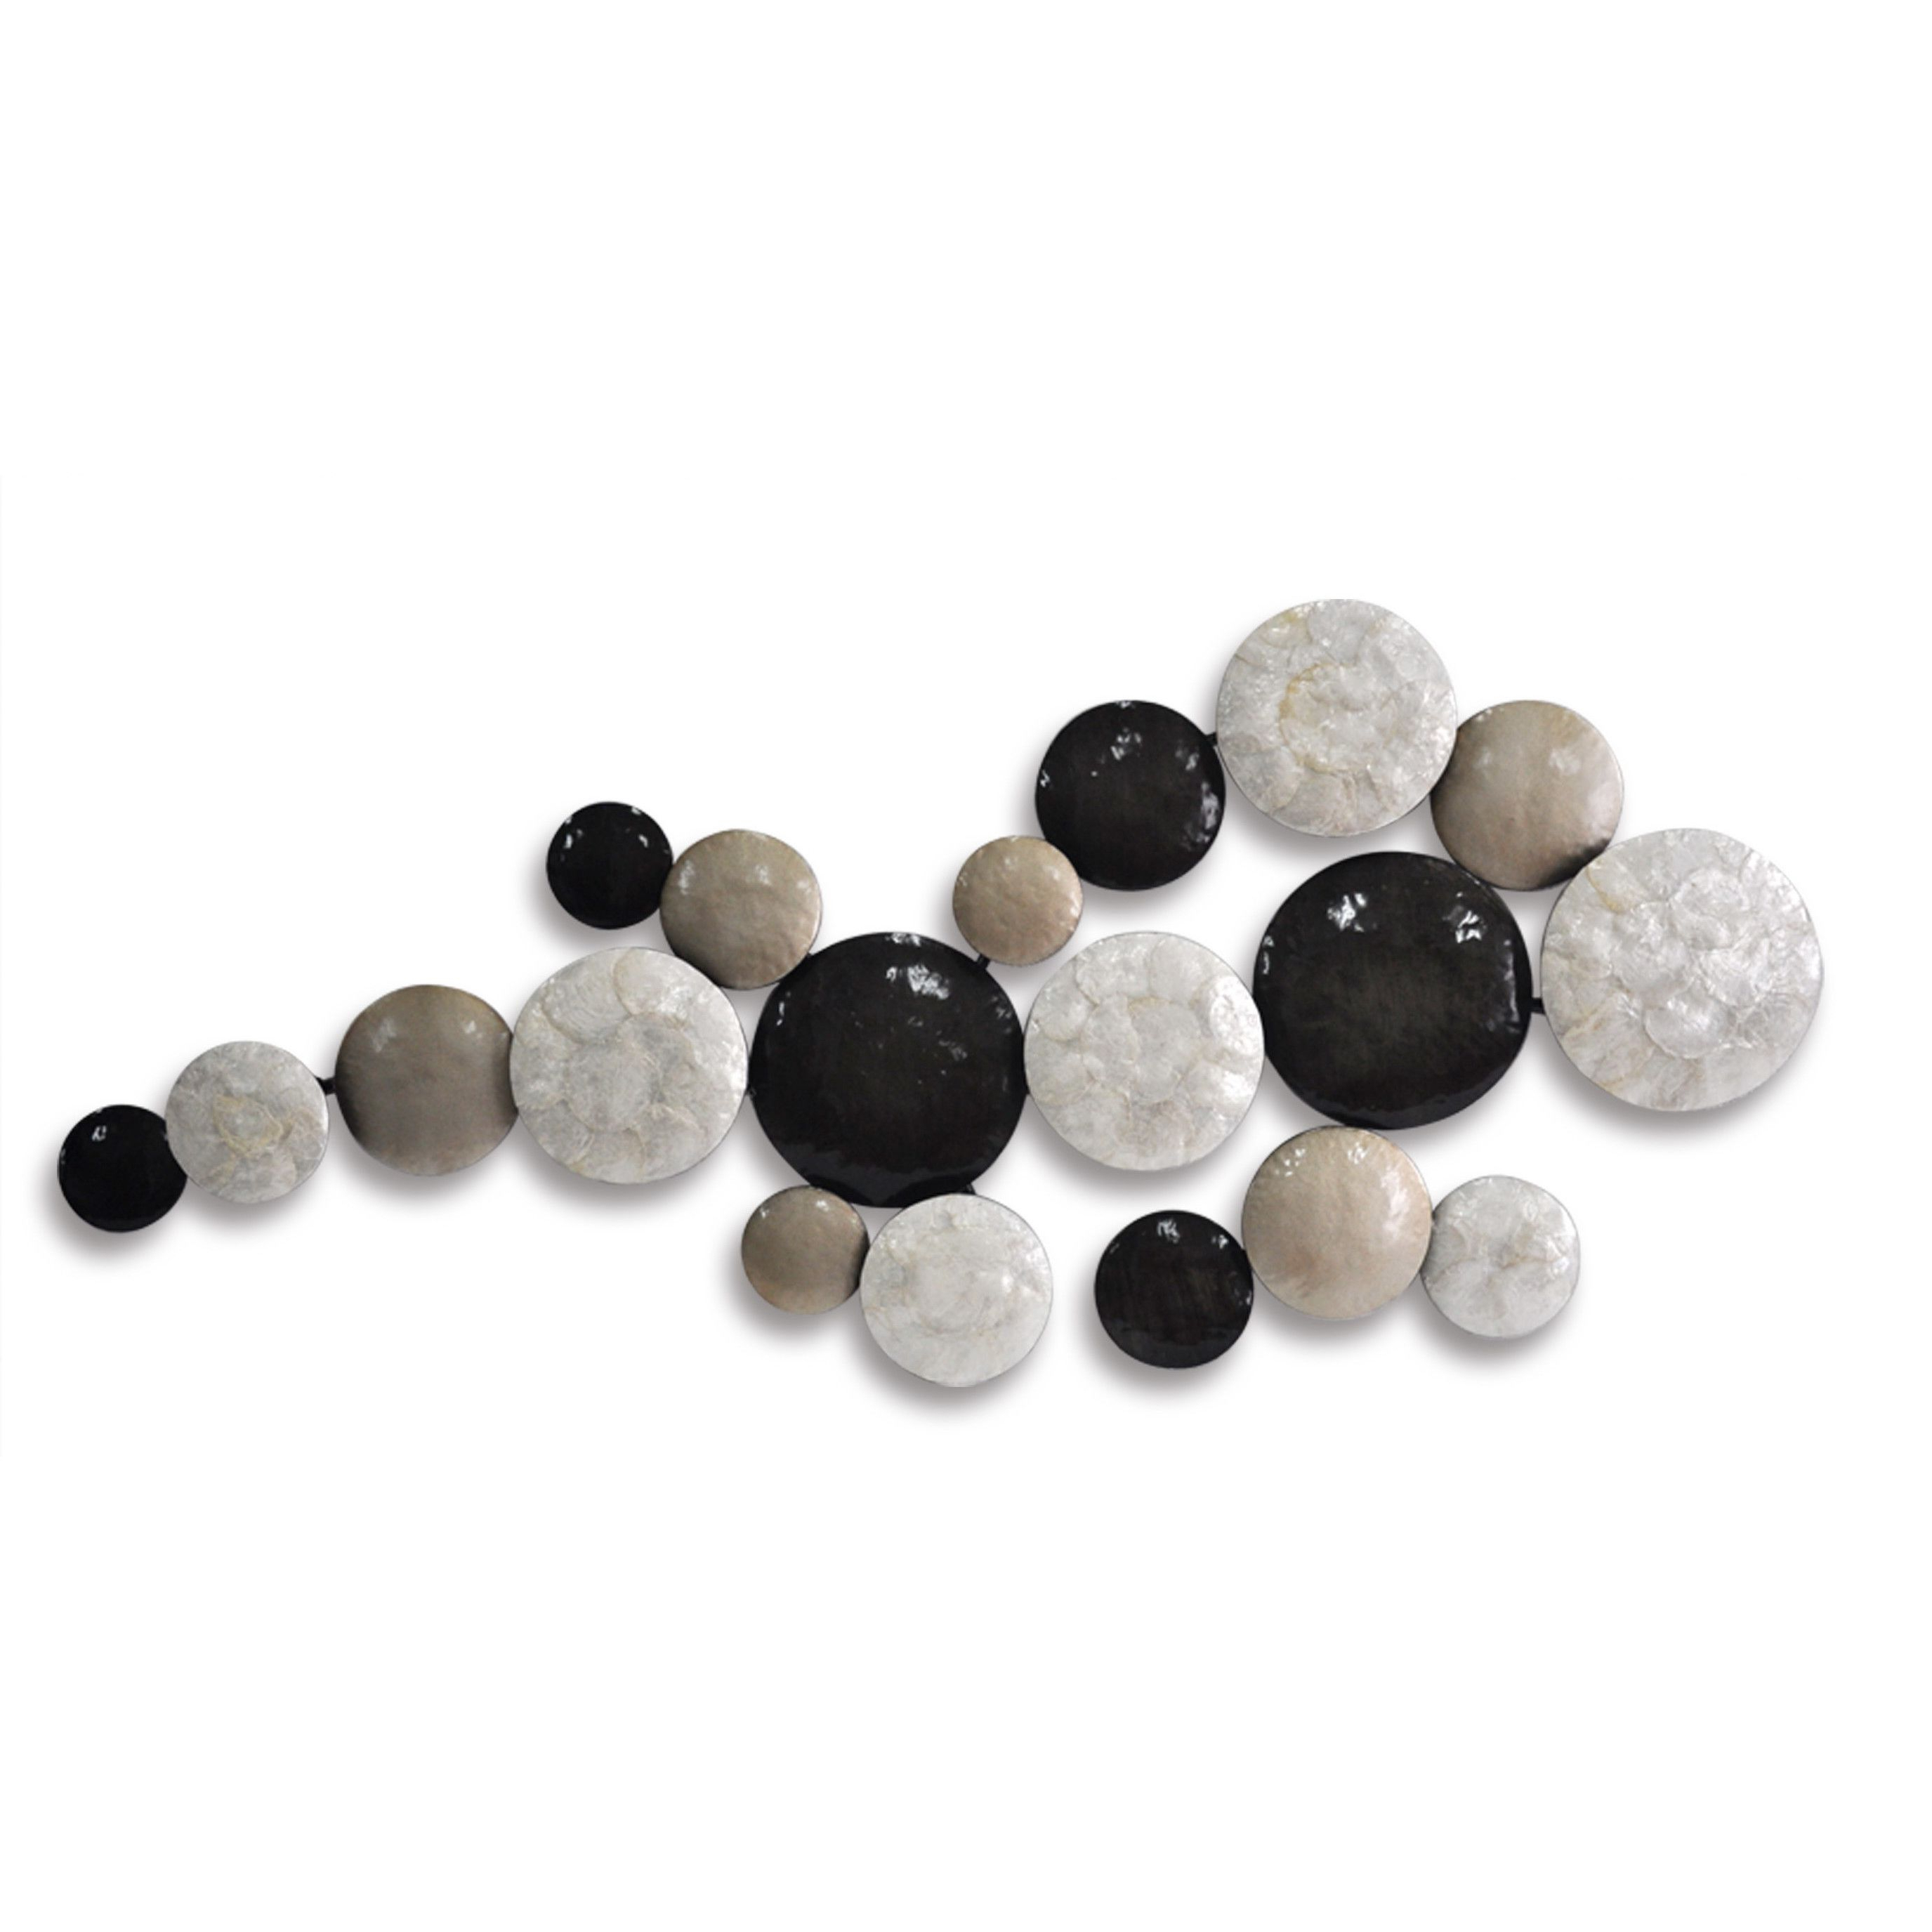 Wall Decor By World Menagerie Pertaining To Most Recent Pebble Trail Wall Decor (View 12 of 20)